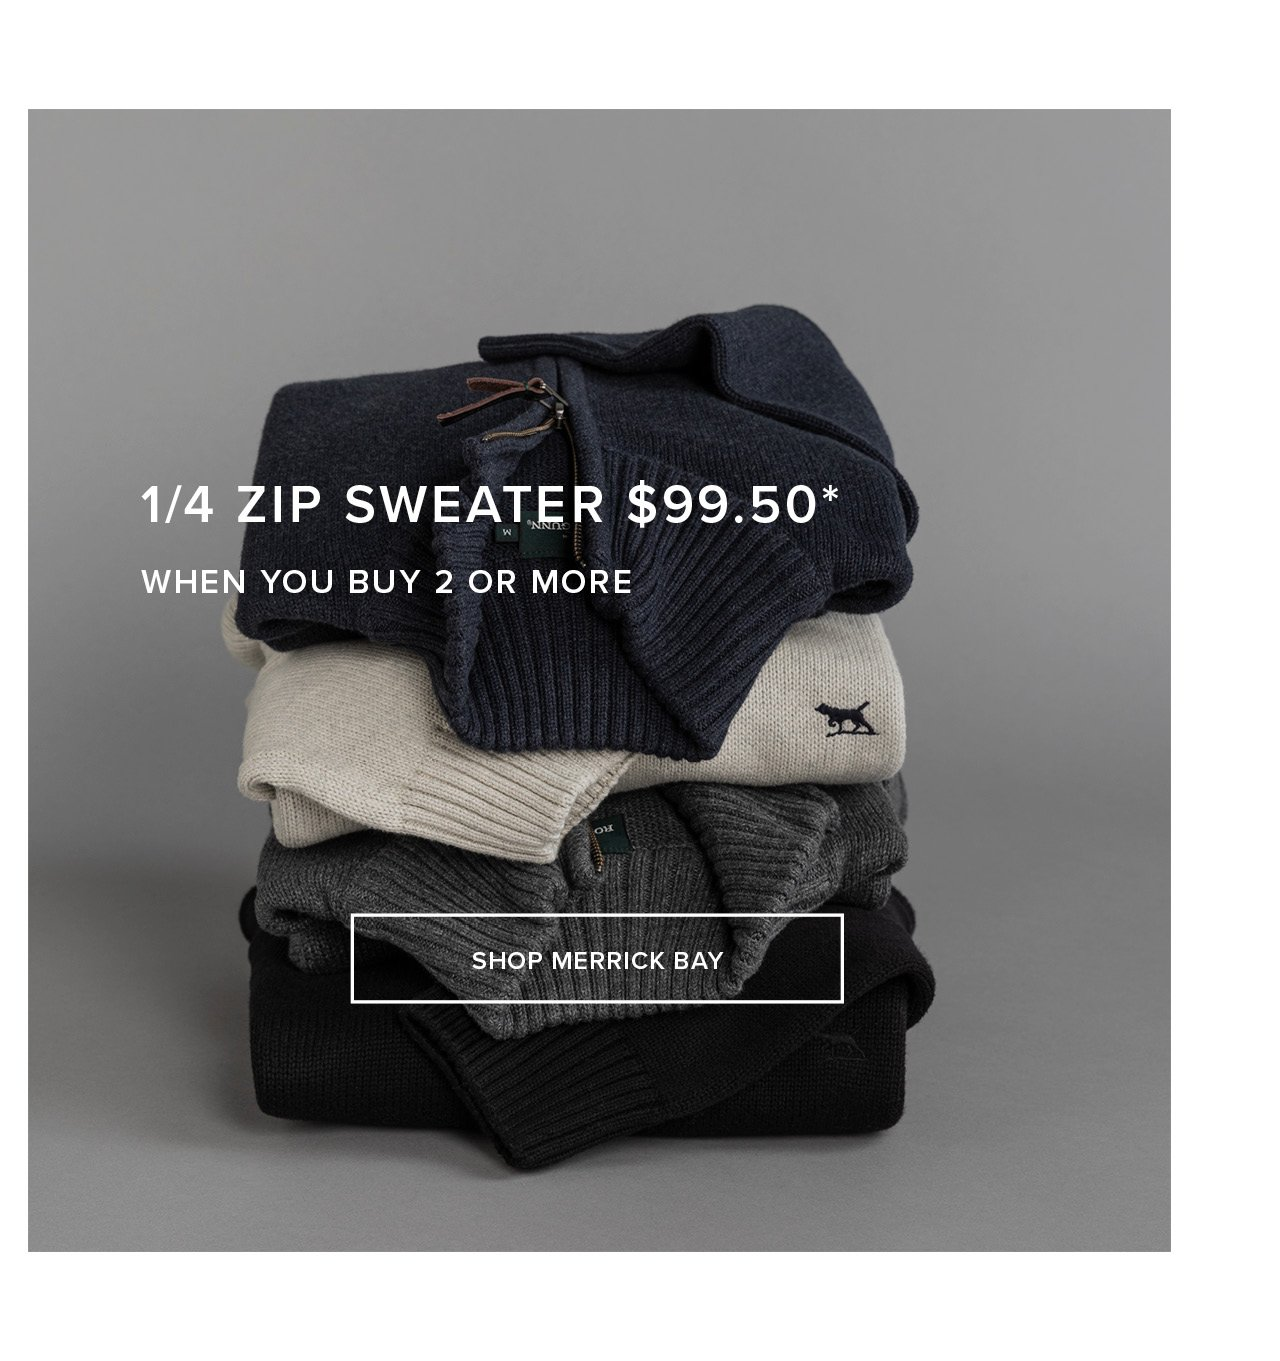 1/4 Zip Sweater - $99.50* When You Buy 2 Or More